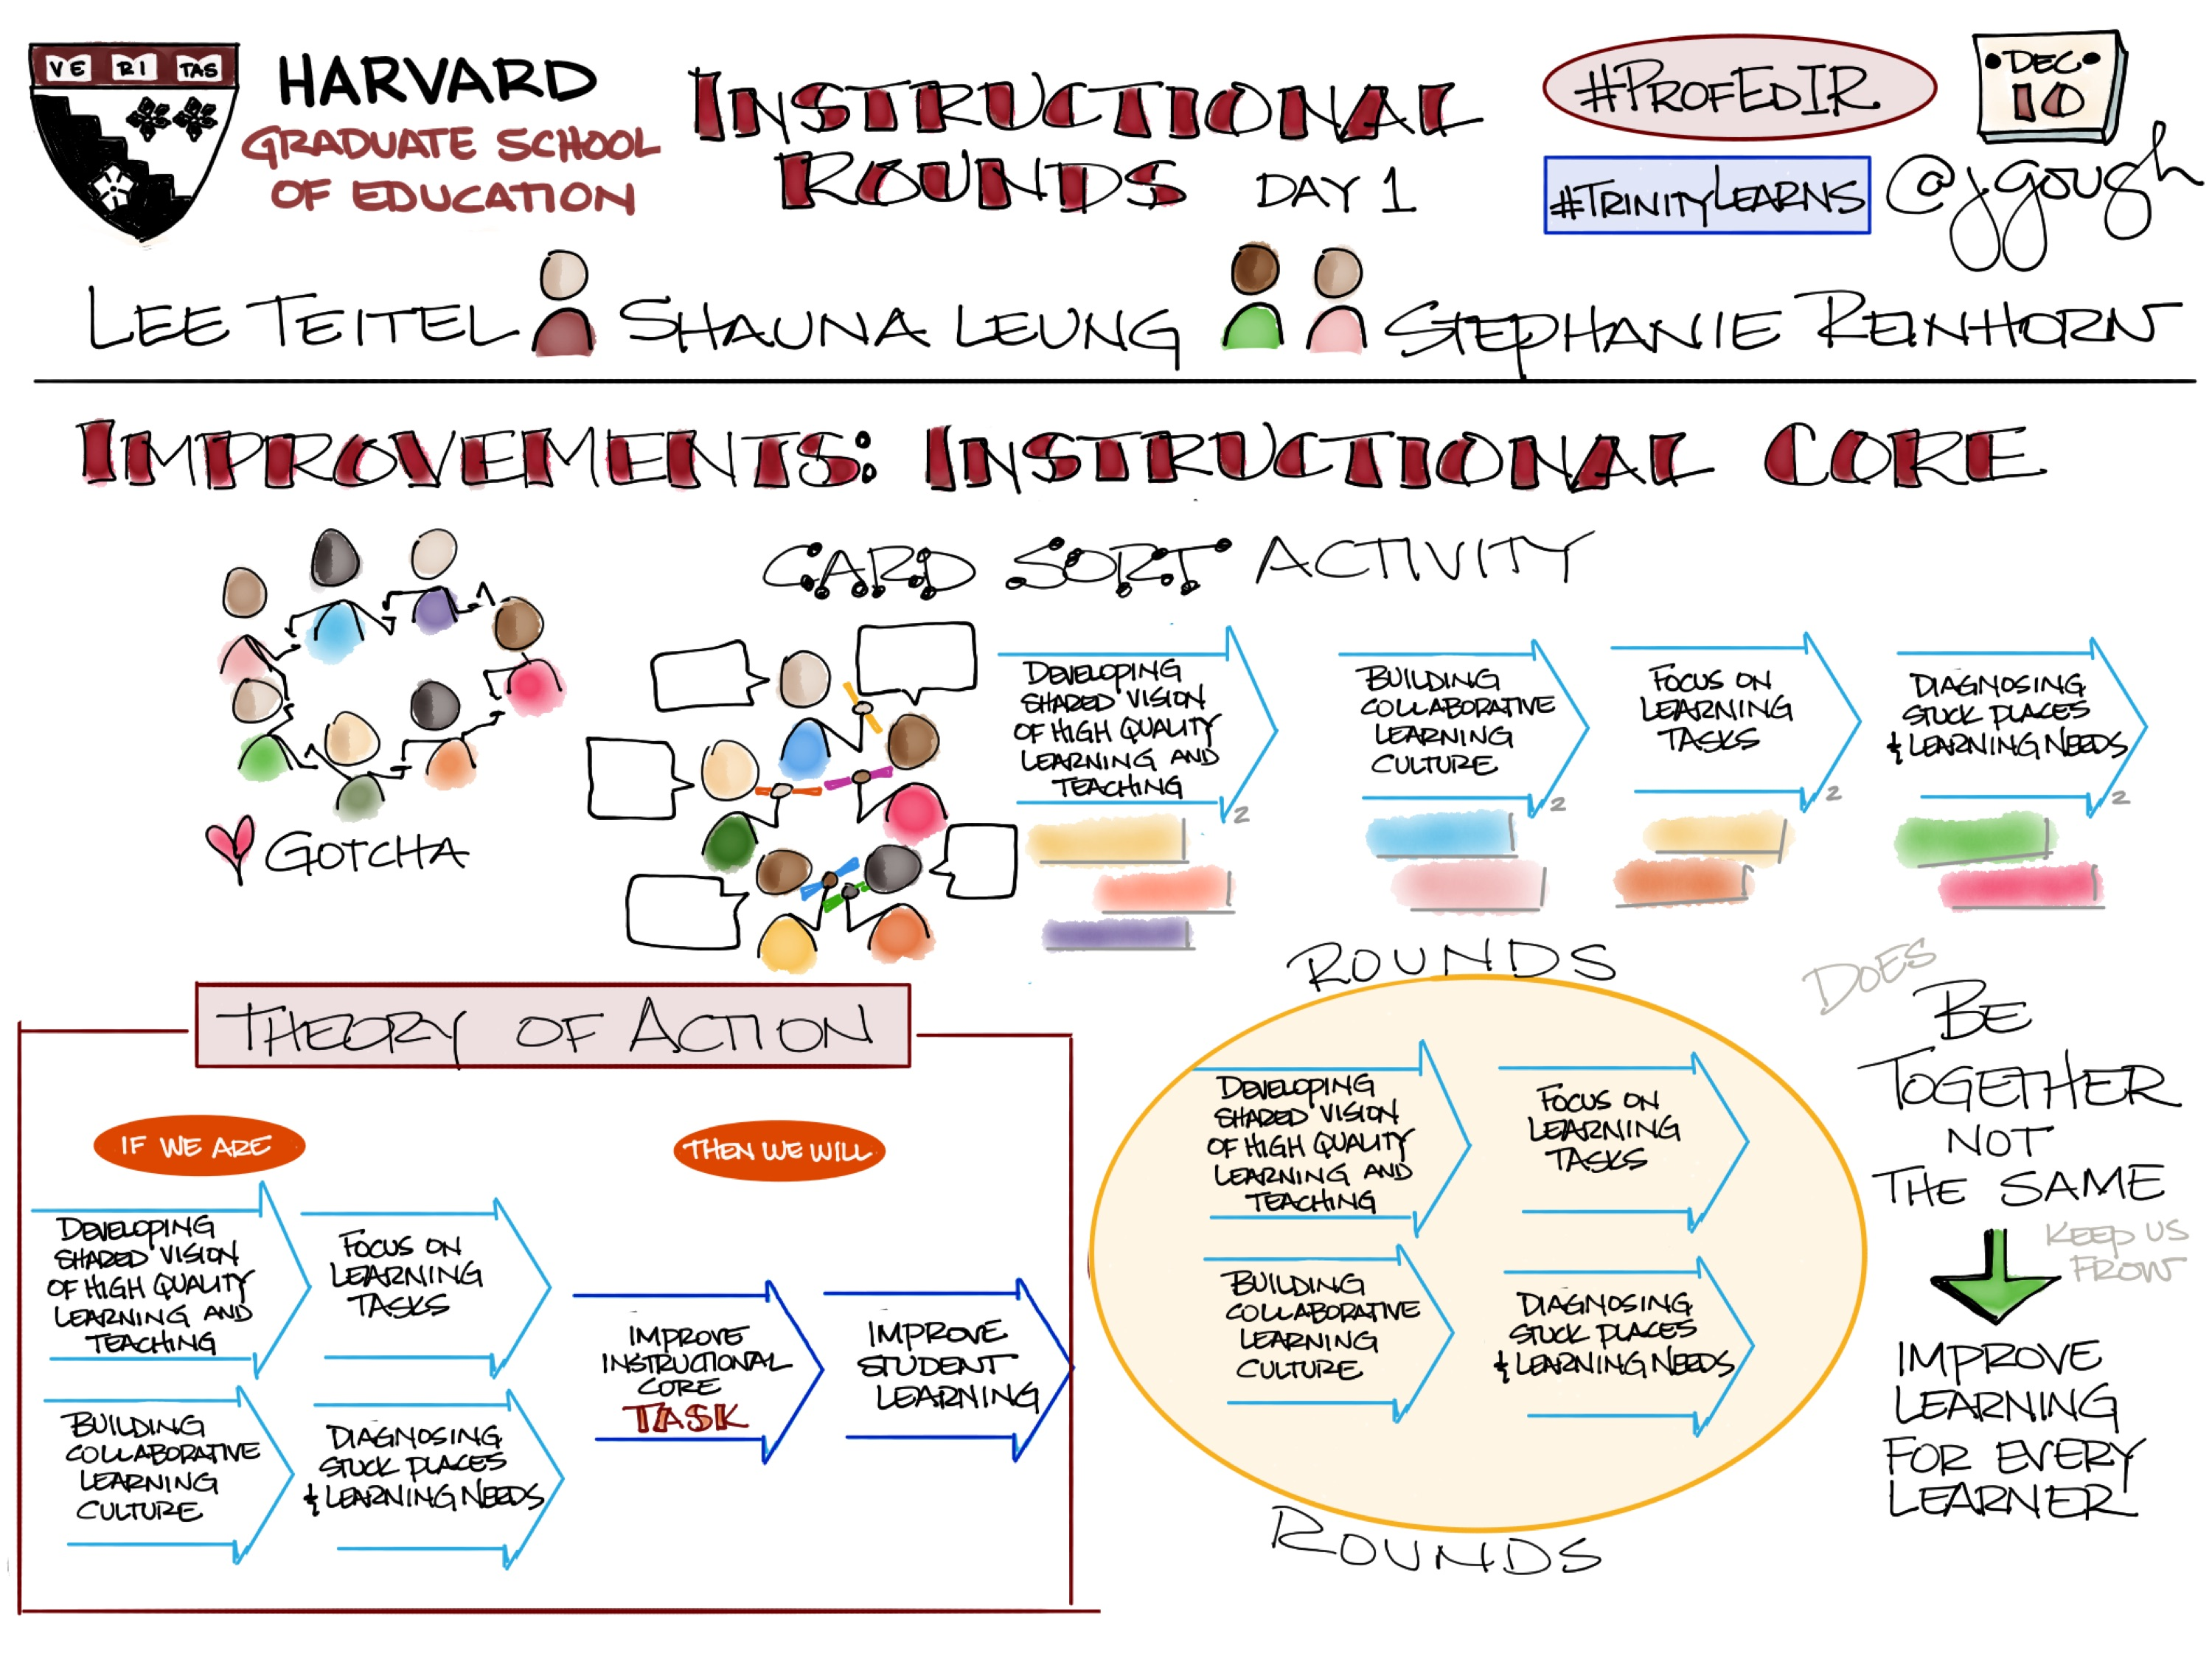 Sharing my #Sketchnotes from #ProfEdIR @HGSE Improvements in the Instructional Core (Day 1) Theory of Action #TrinityLearns